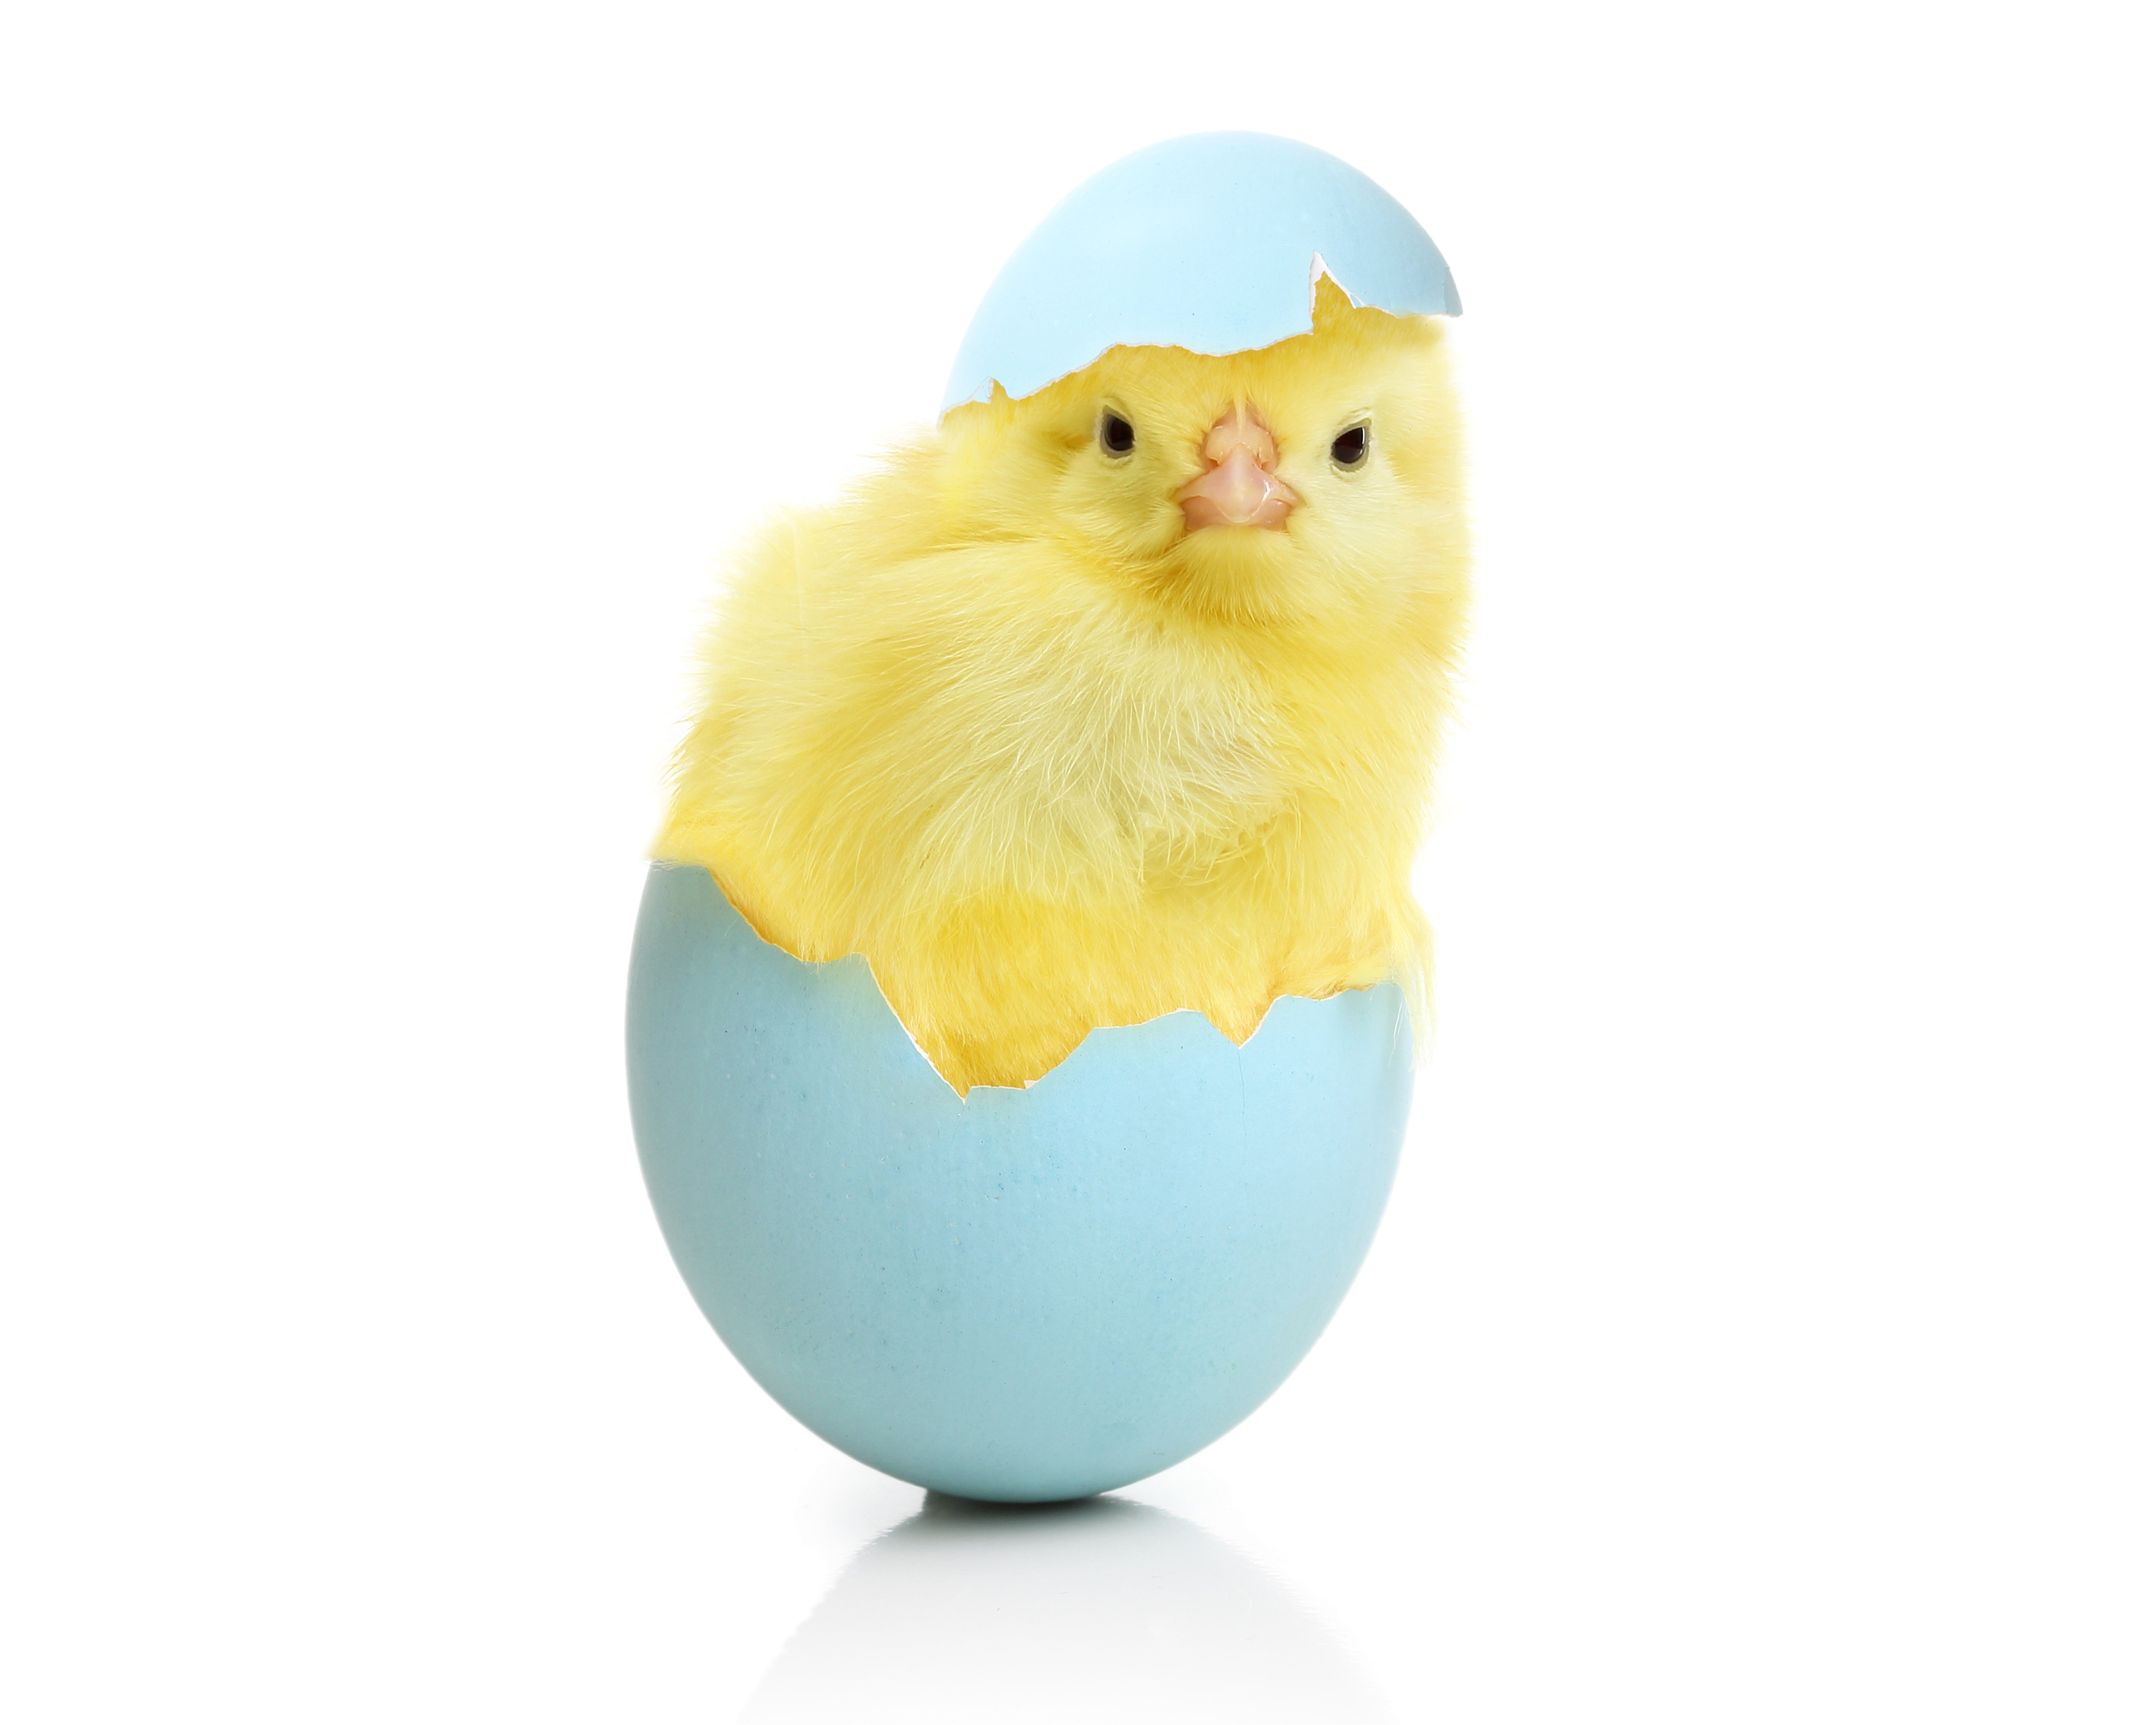 Chicken Eggs Animals egg easter chick baby wallpaper | 5200x4160 ...